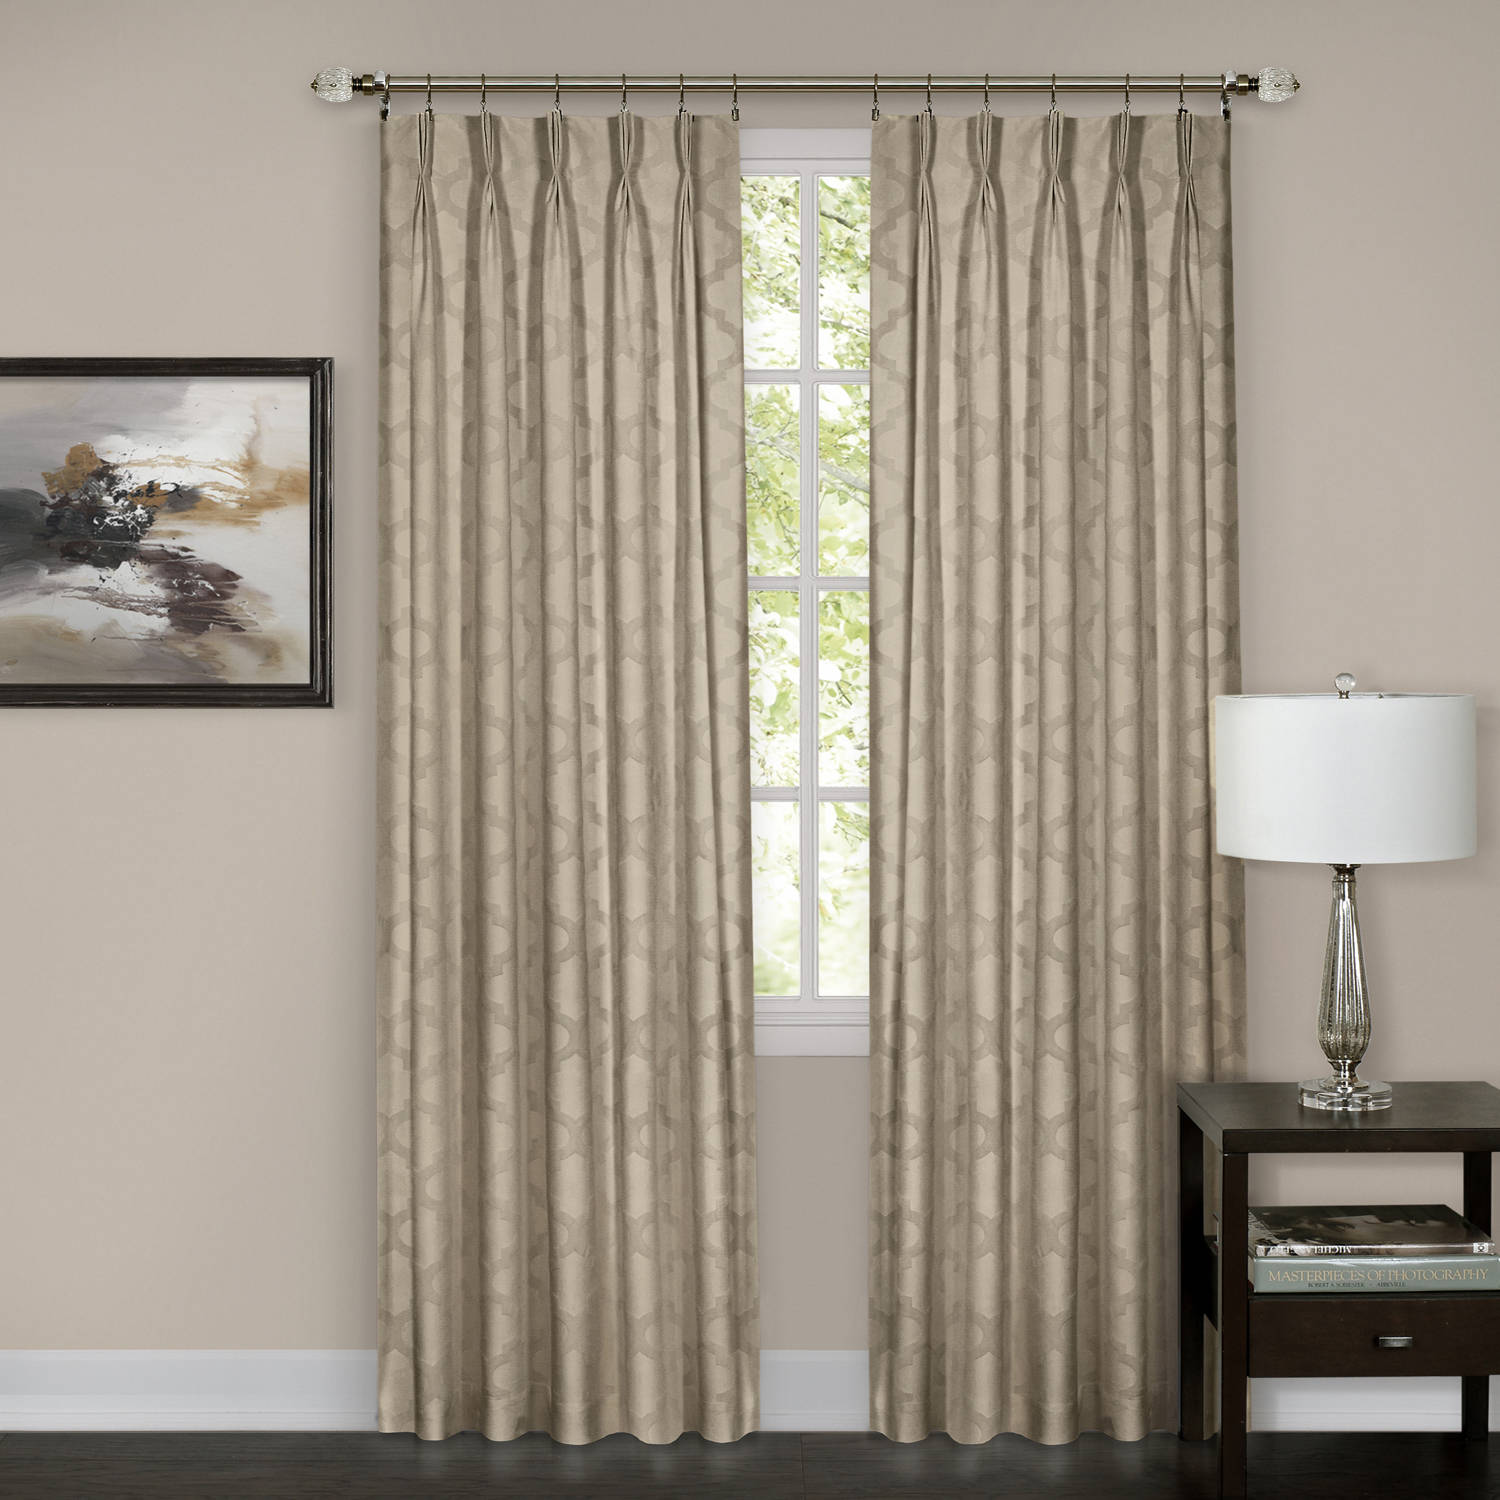 94 Inch Blackout Curtains 94 Panel Curtains Home The Honoroak